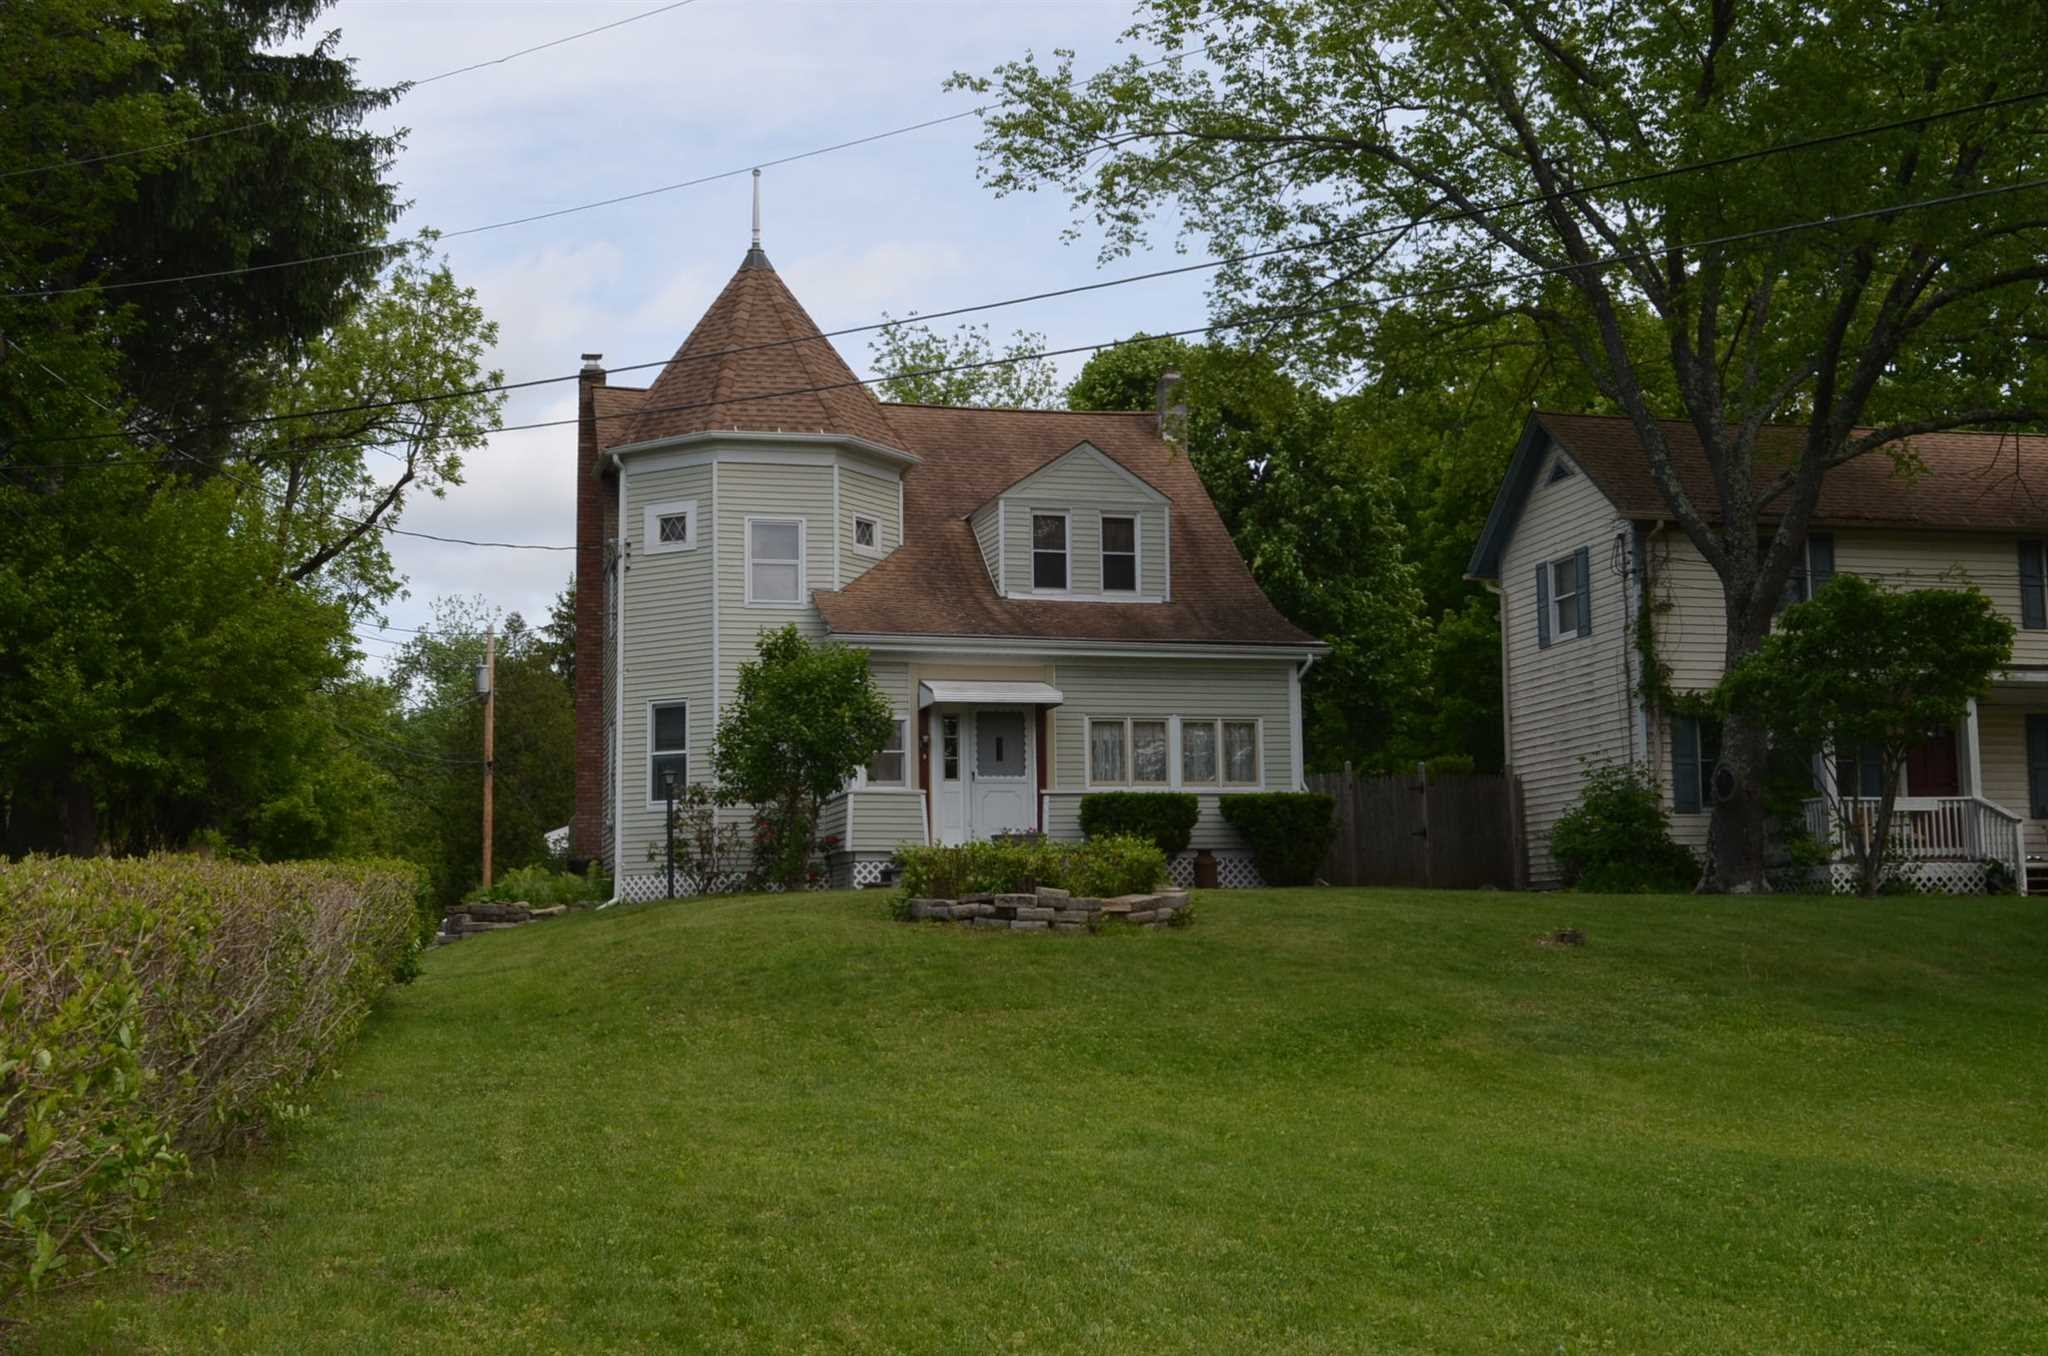 Single Family Home for Sale at 46 OLD POST ROAD 46 OLD POST ROAD Hyde Park, New York 12580 United States